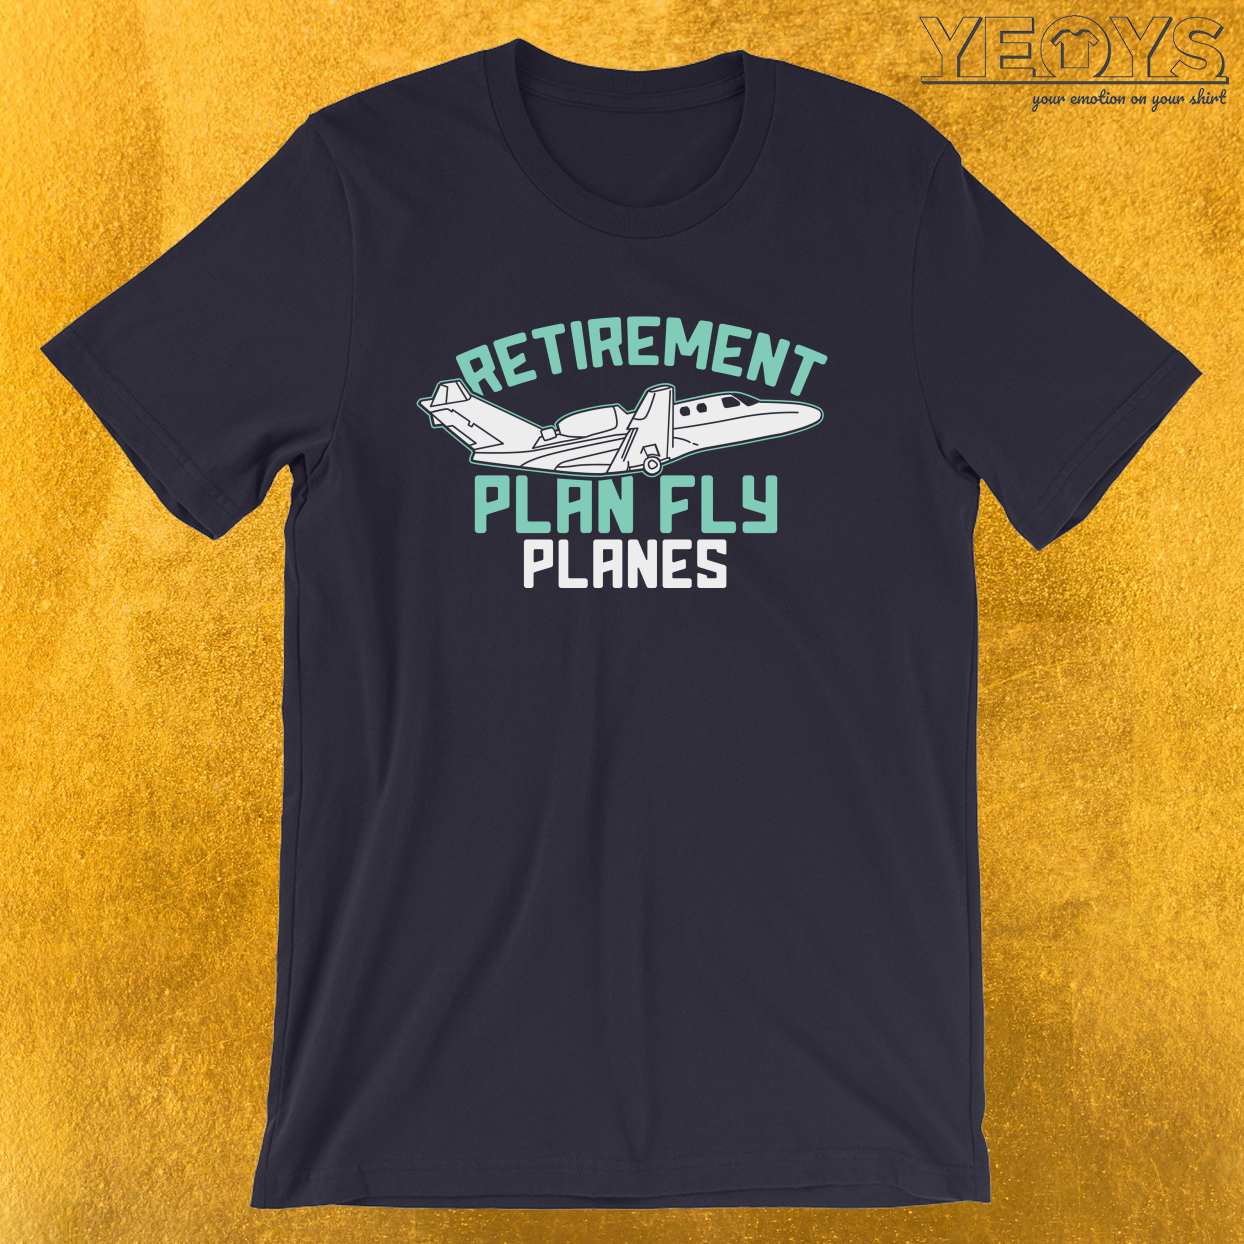 Retirement Plan Fly Planes – Aircraft Tee